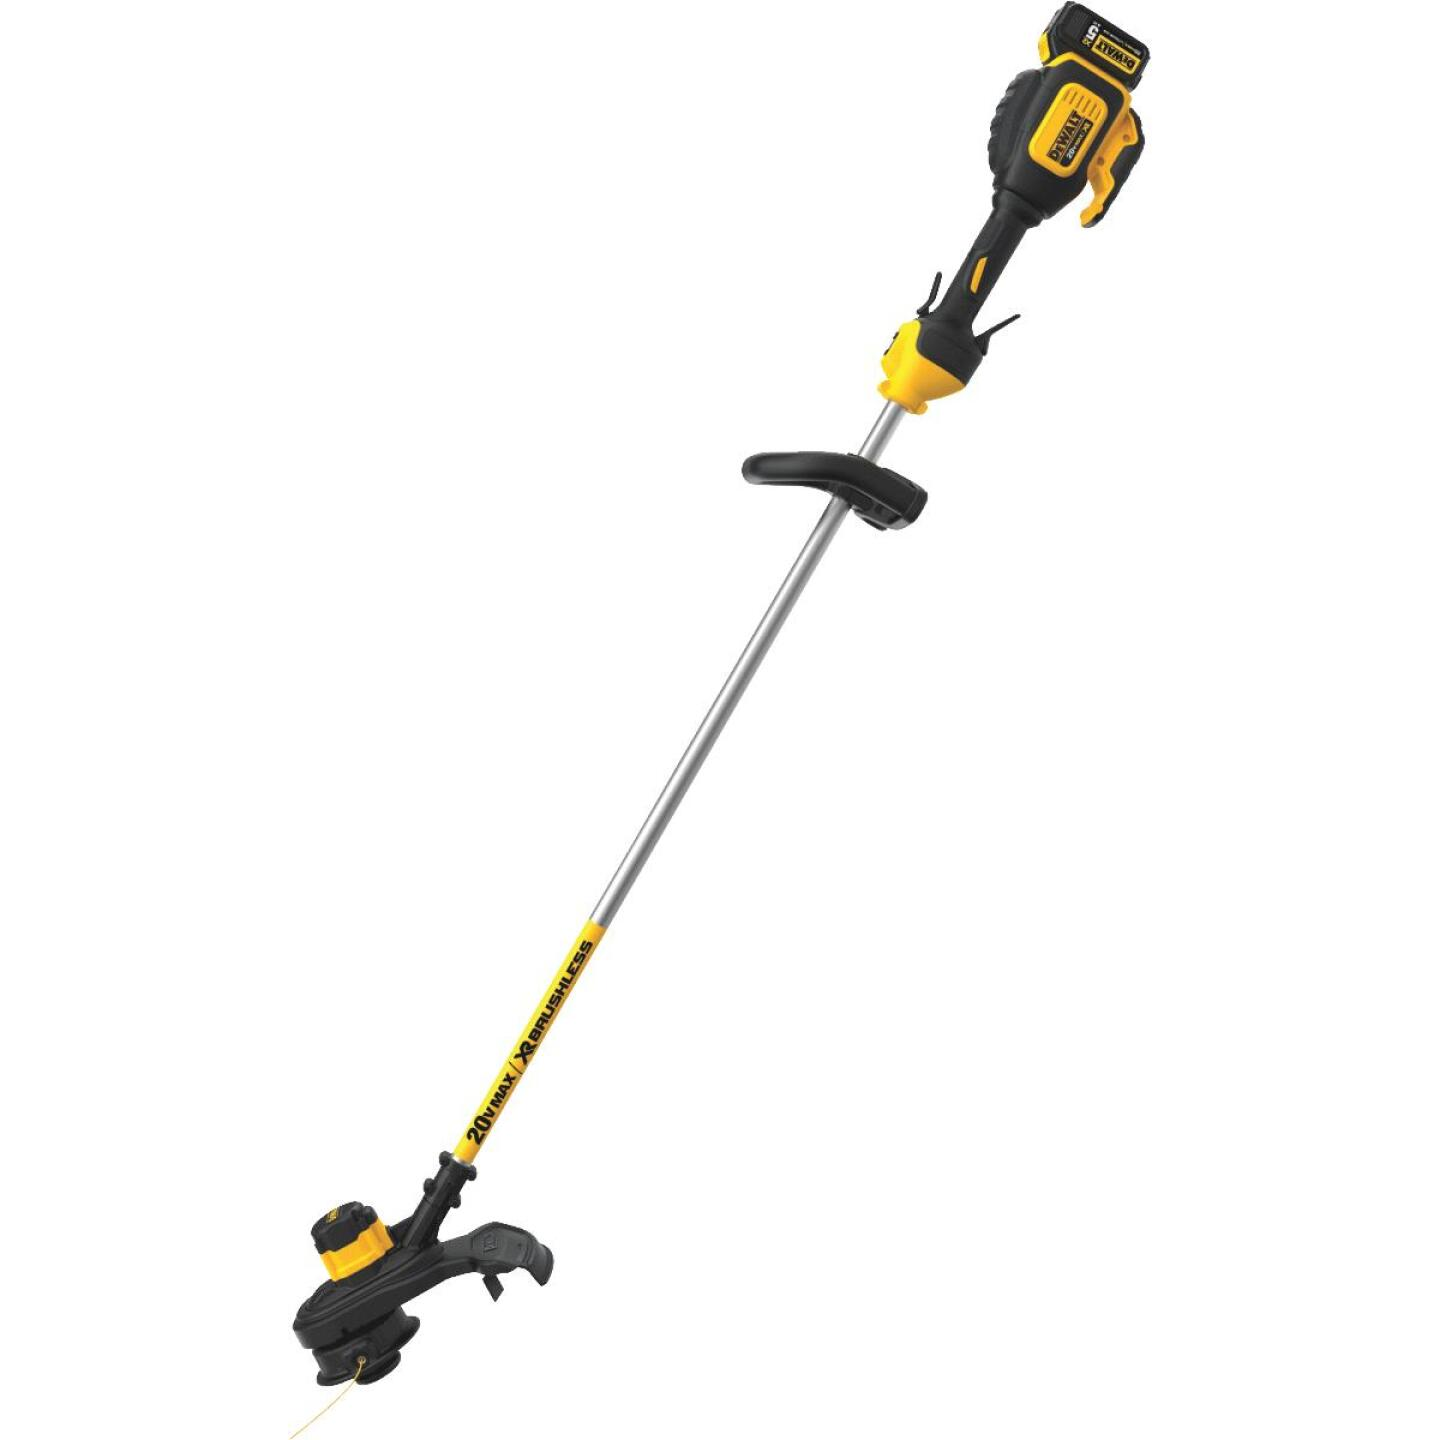 DeWalt 20V MAX 13 In. Lithium Ion Straight Cordless String Trimmer Image 5